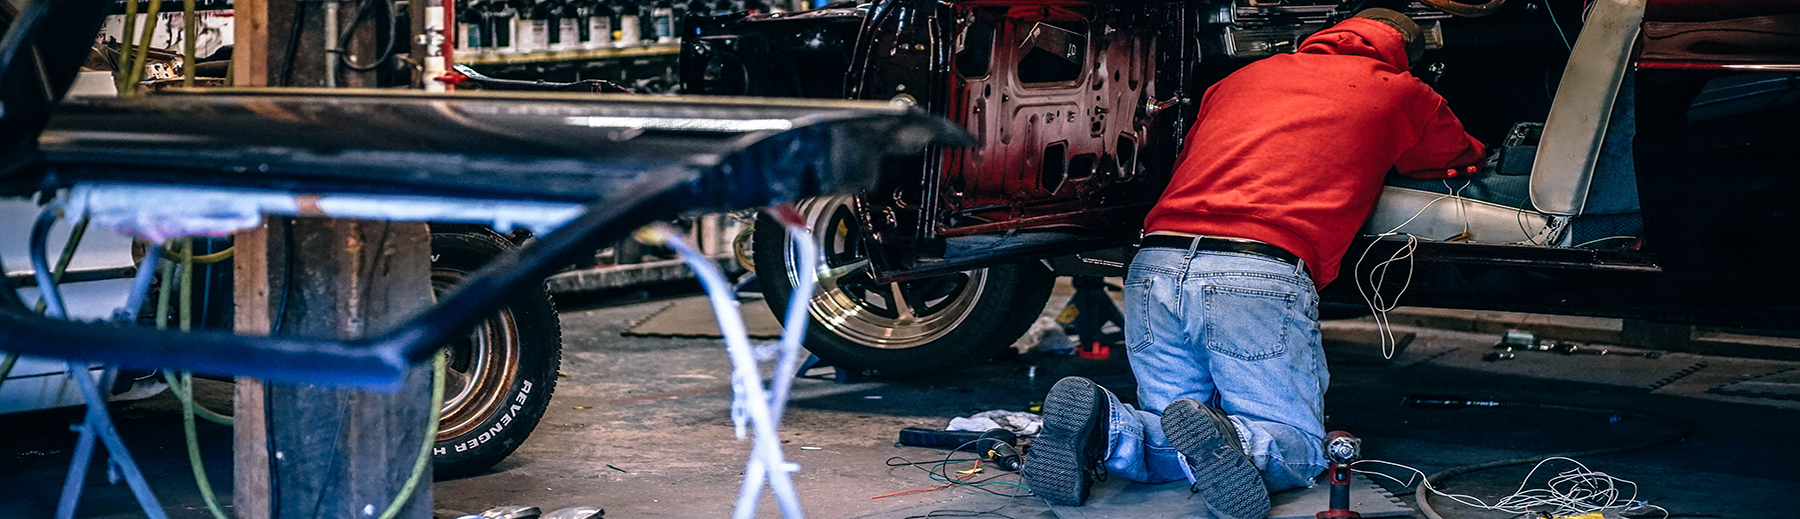 A mechanic works on a car in an autobody shop